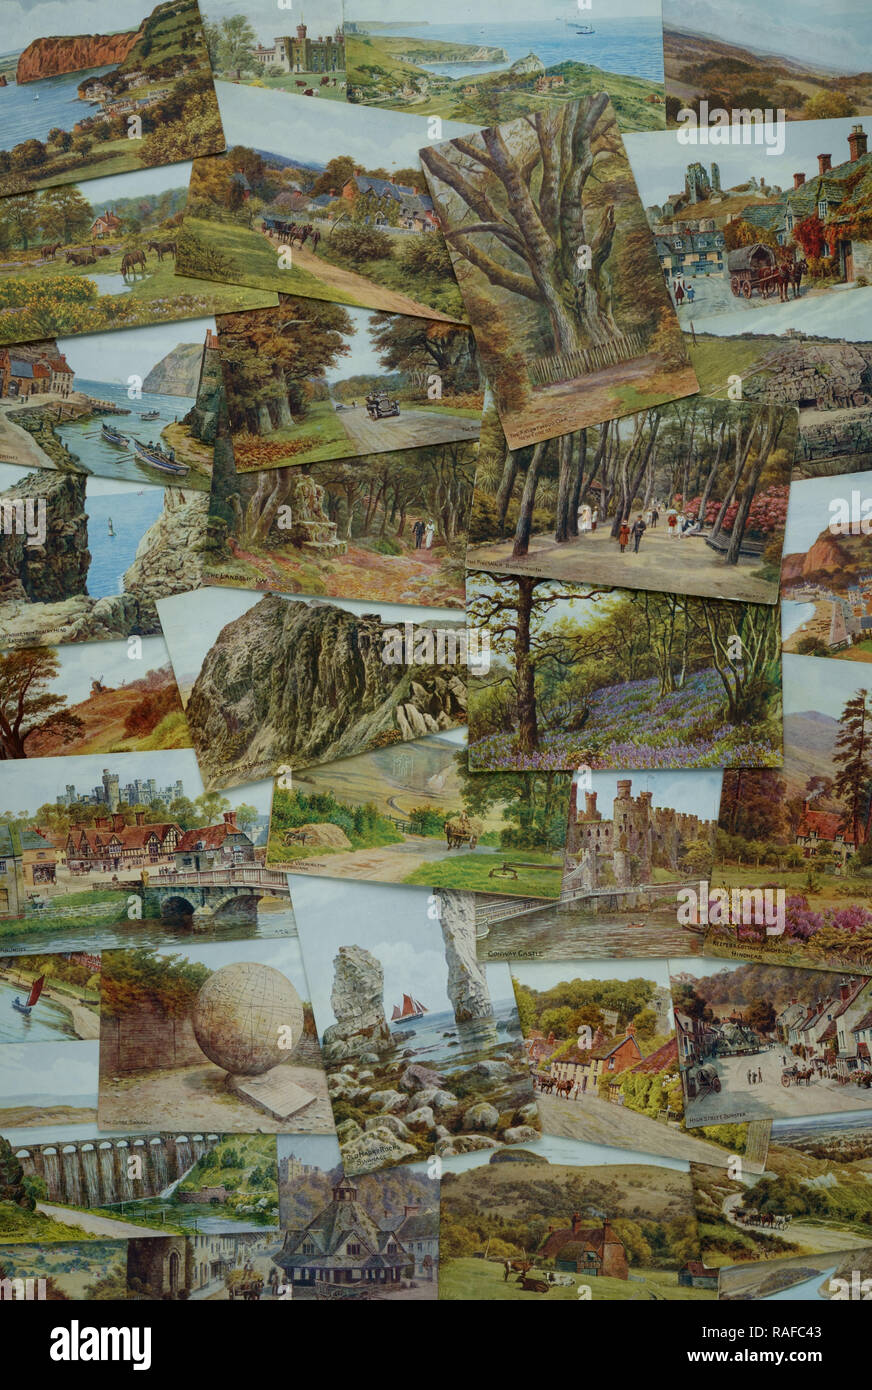 Assortment  of Salmon postcards by A R Quinton - Stock Image